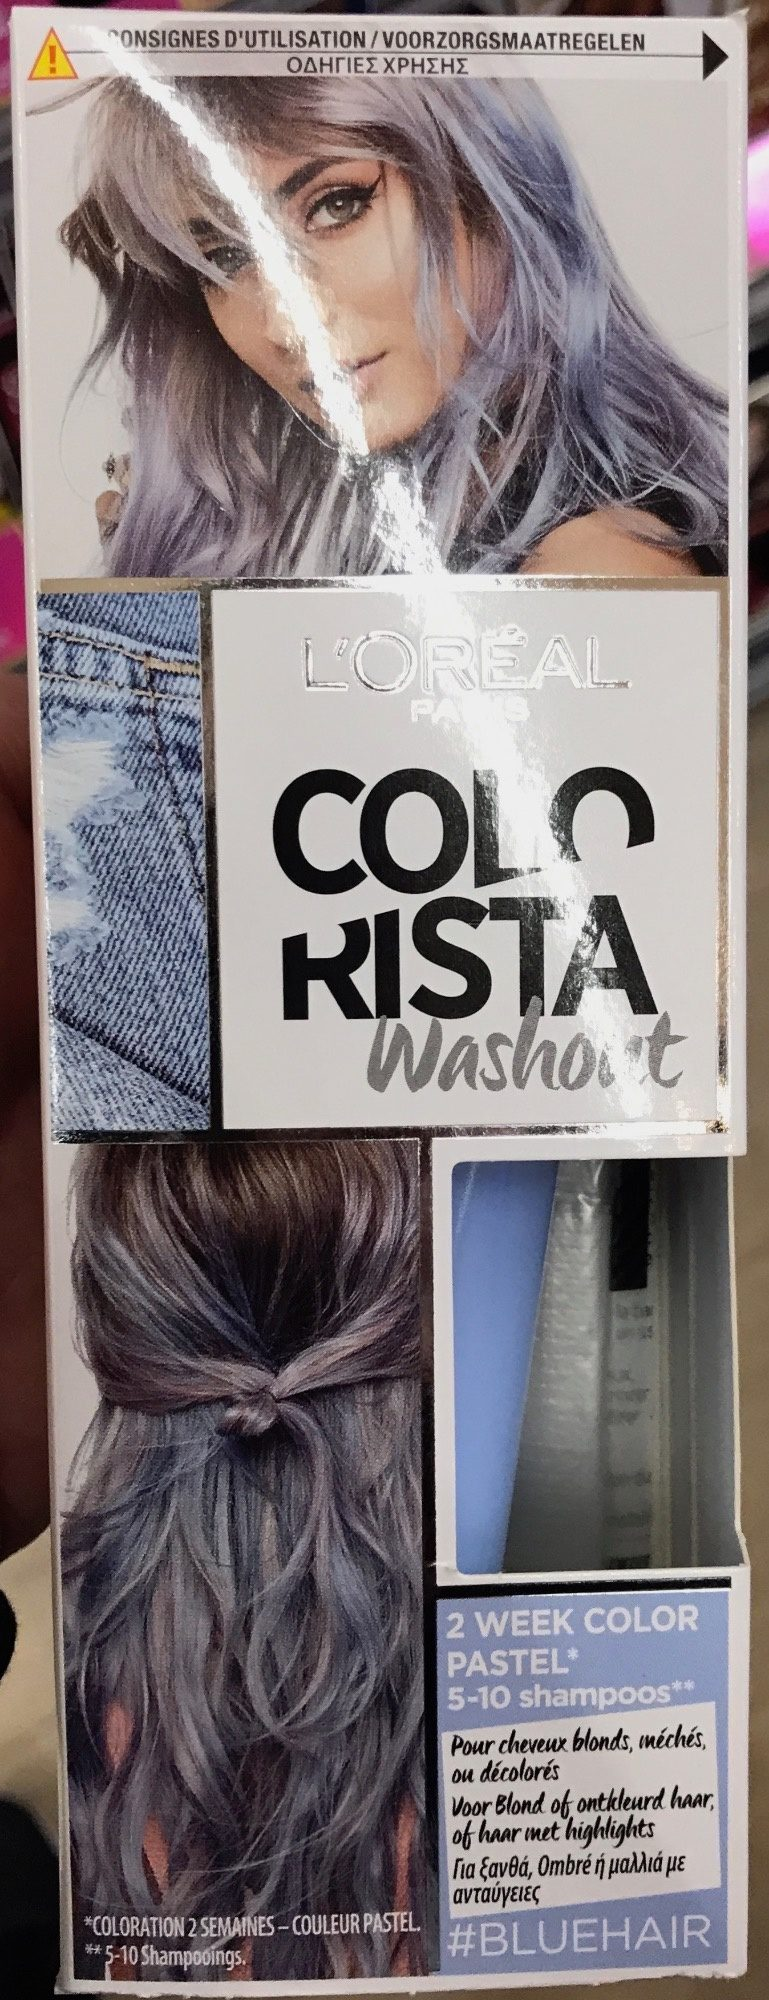 Colorista washout #bluehair - Product - fr